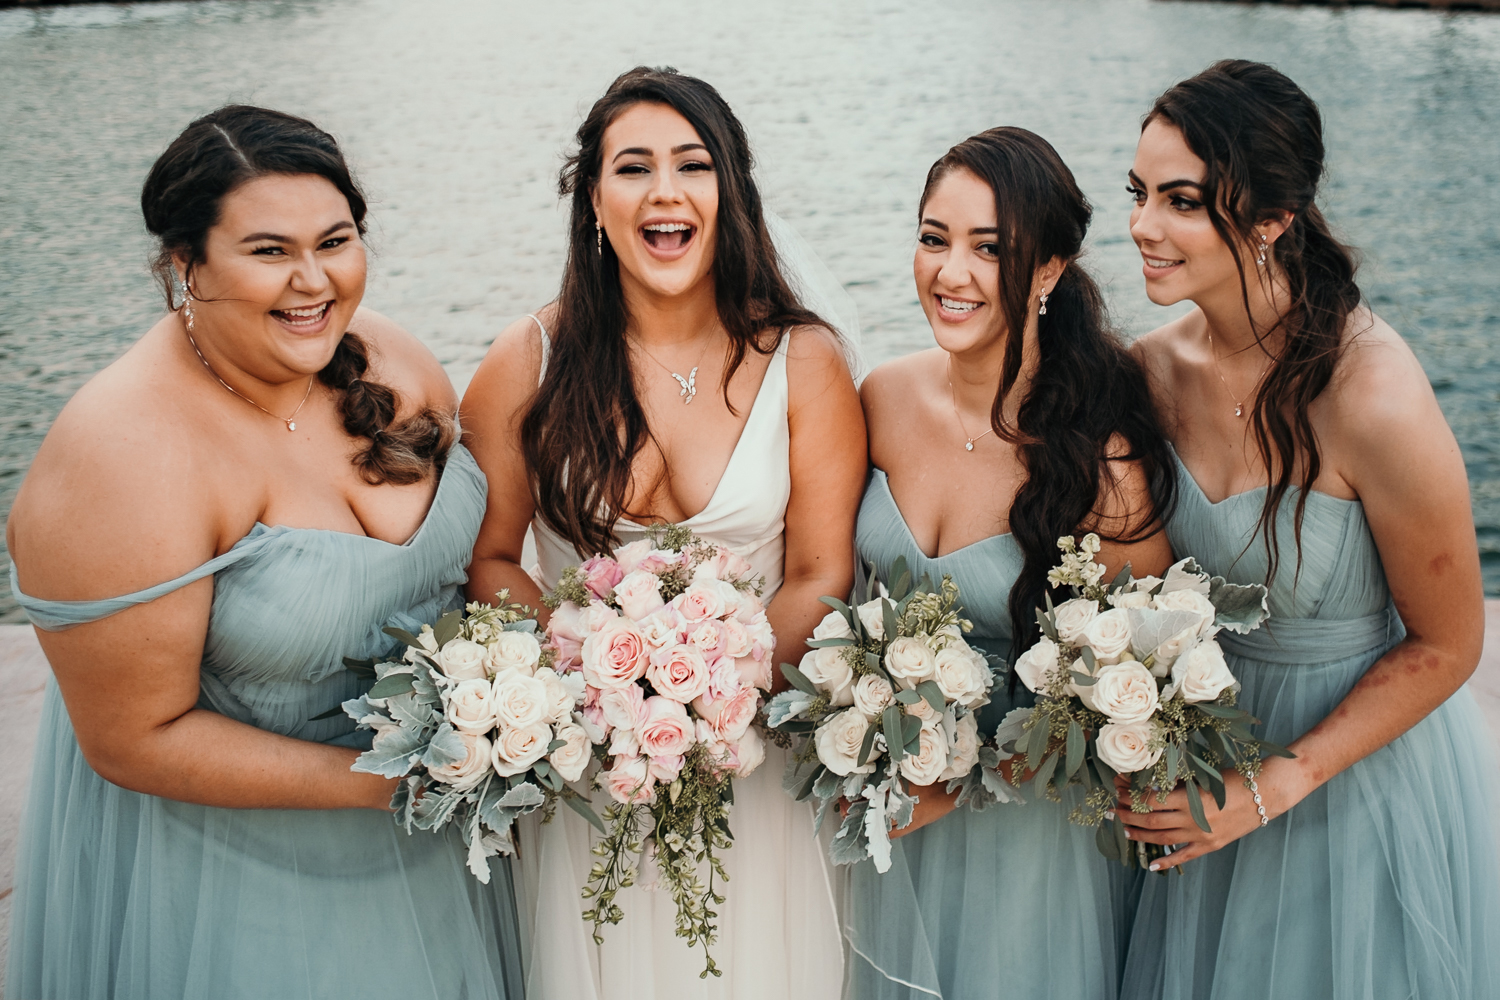 bridesmaids with lake in background